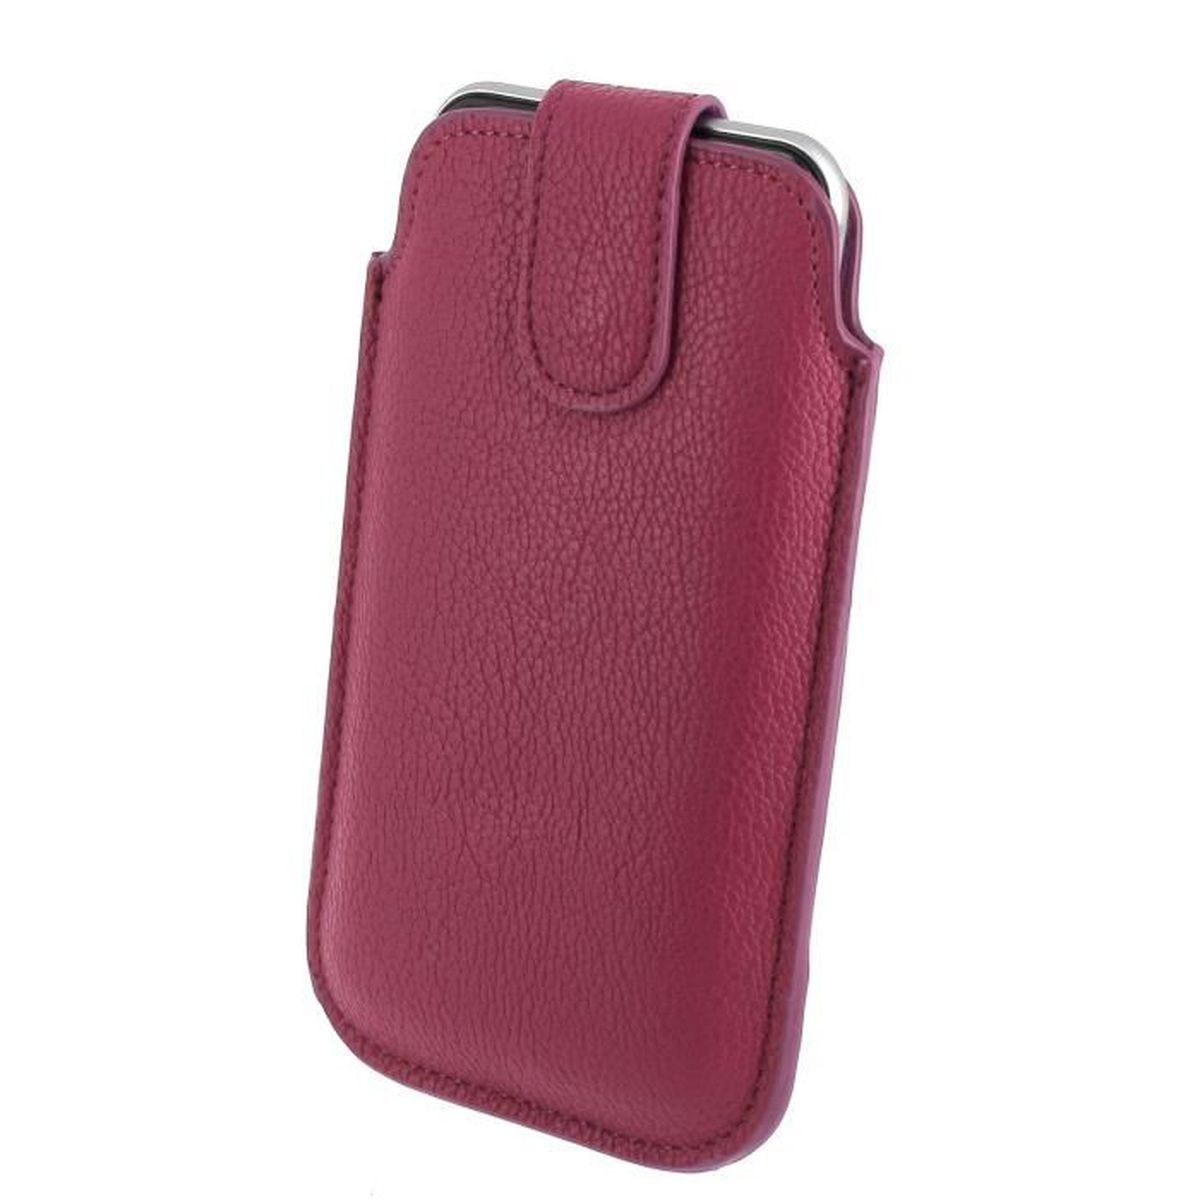 Acce2s pour wiko sunny housse etui aspect cuir graine for Housse wiko sunny 2